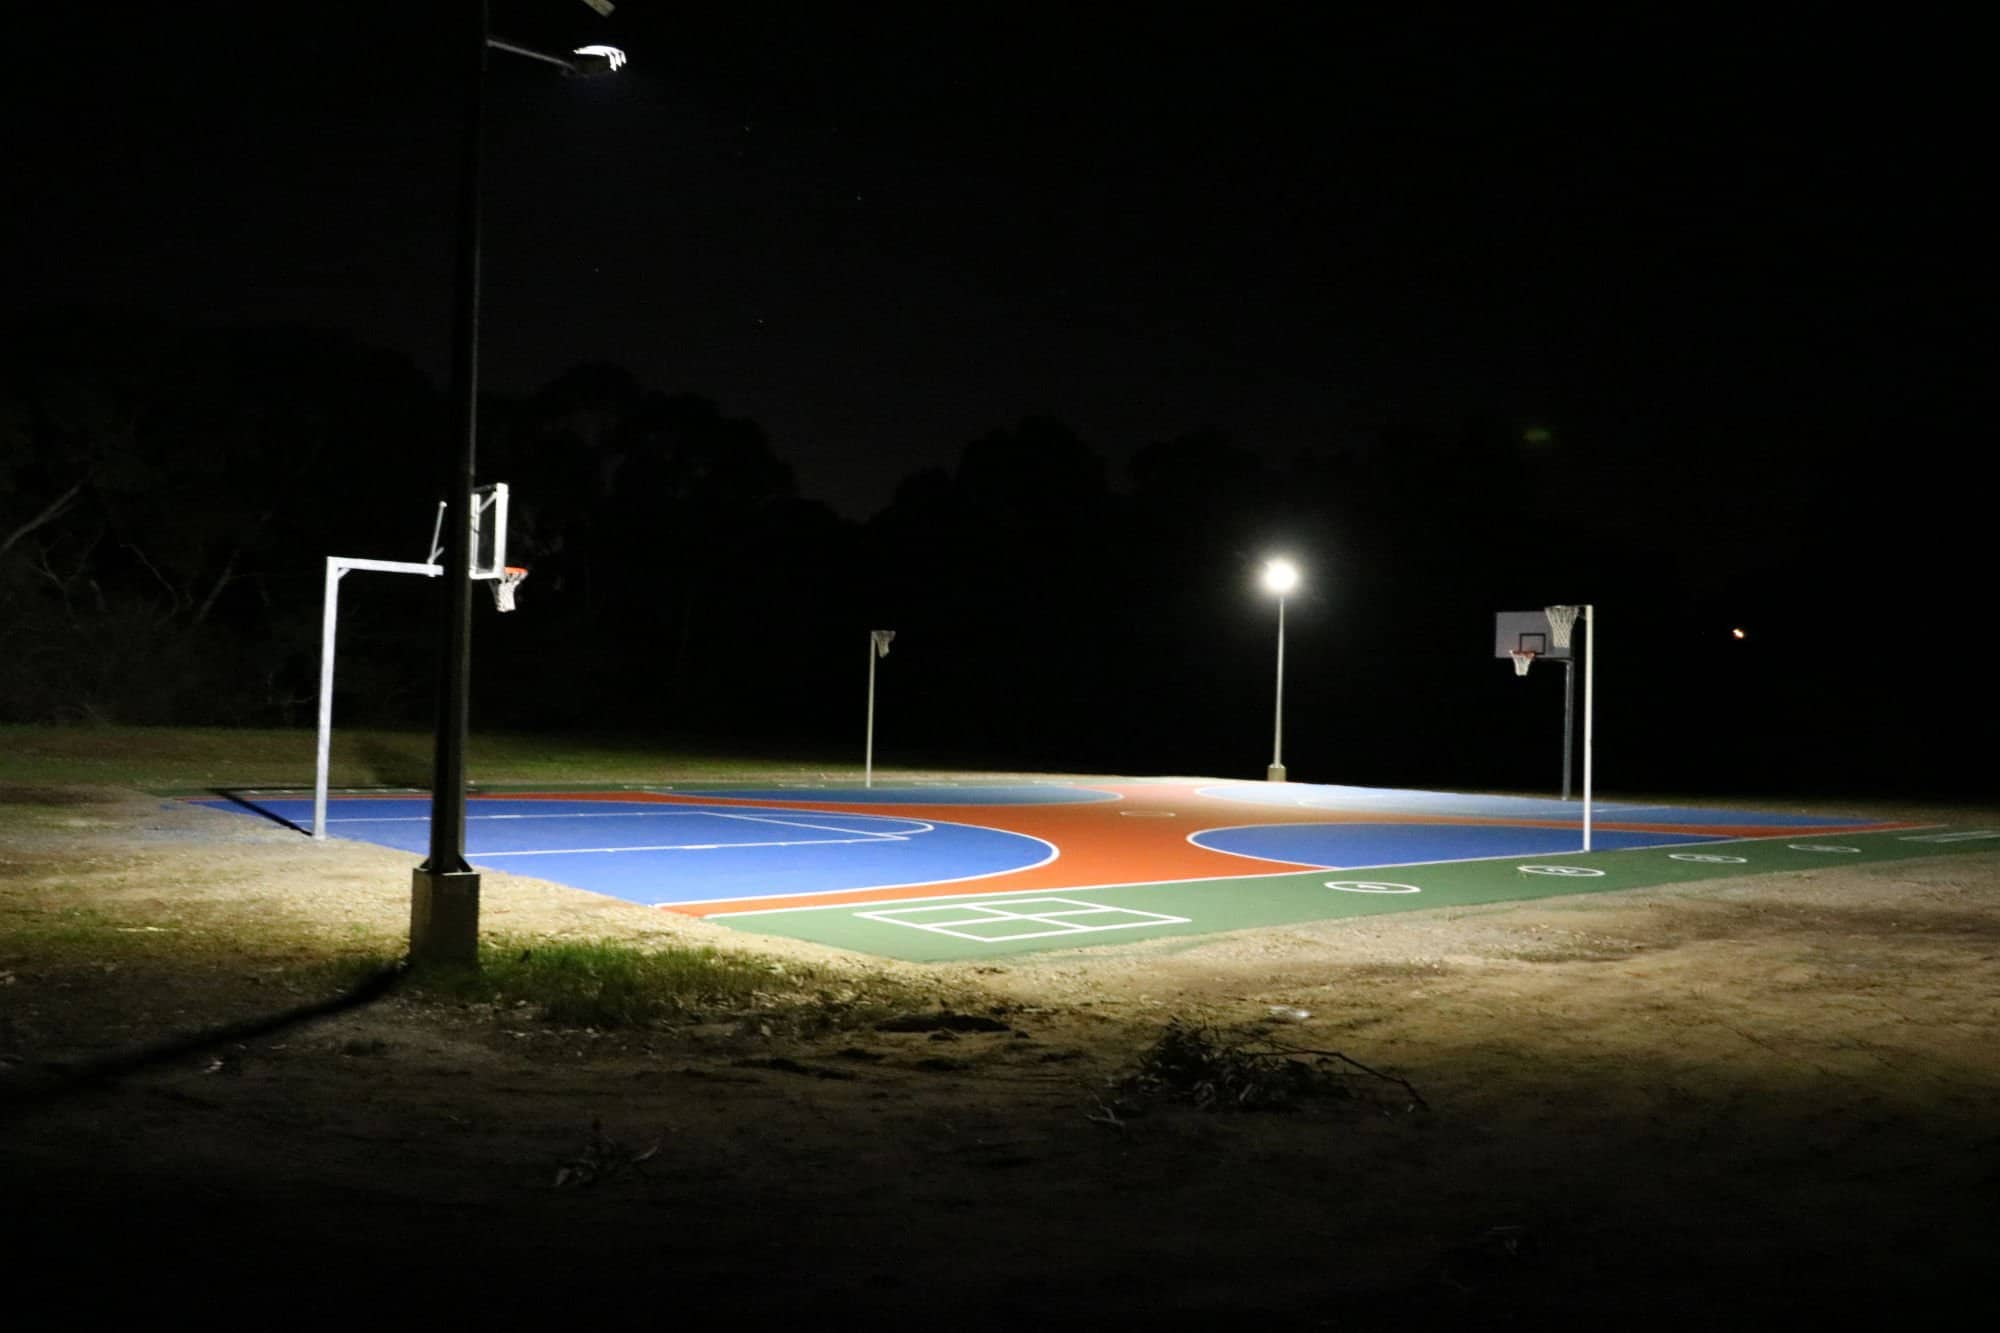 solar powered basketball court lighting - Hewett SA